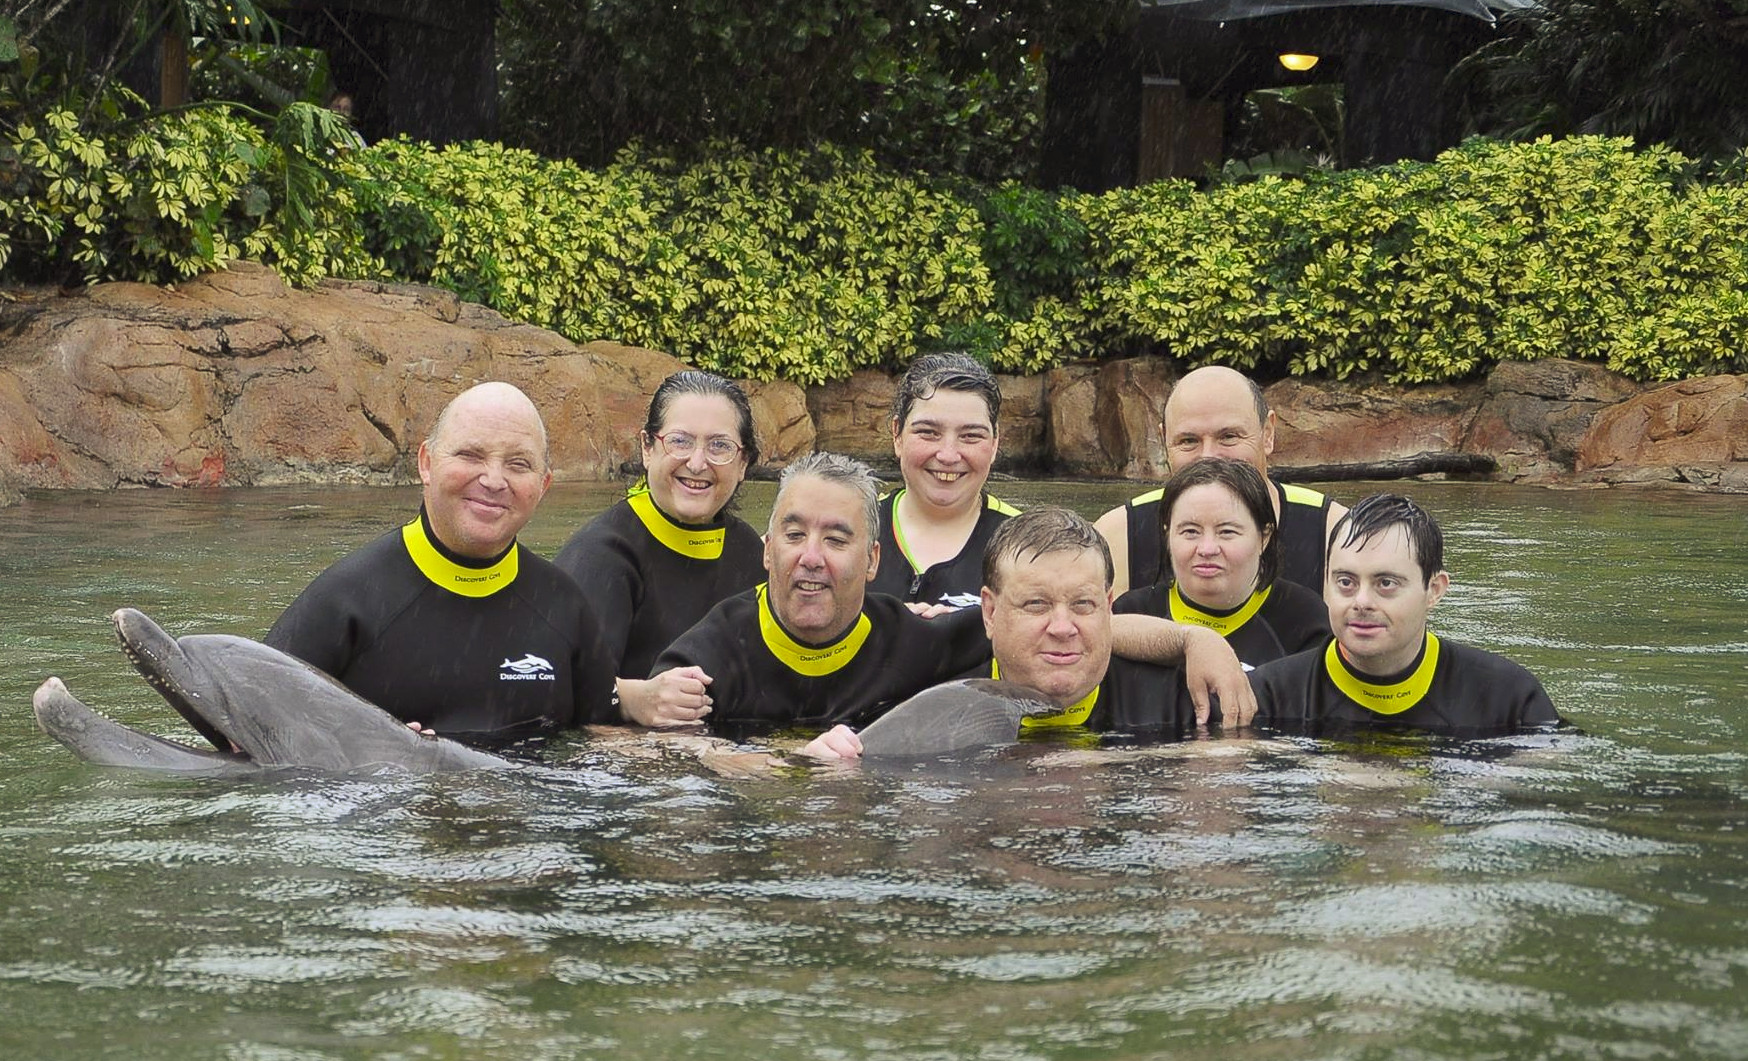 Recreation group poses while swimming with a dolphin